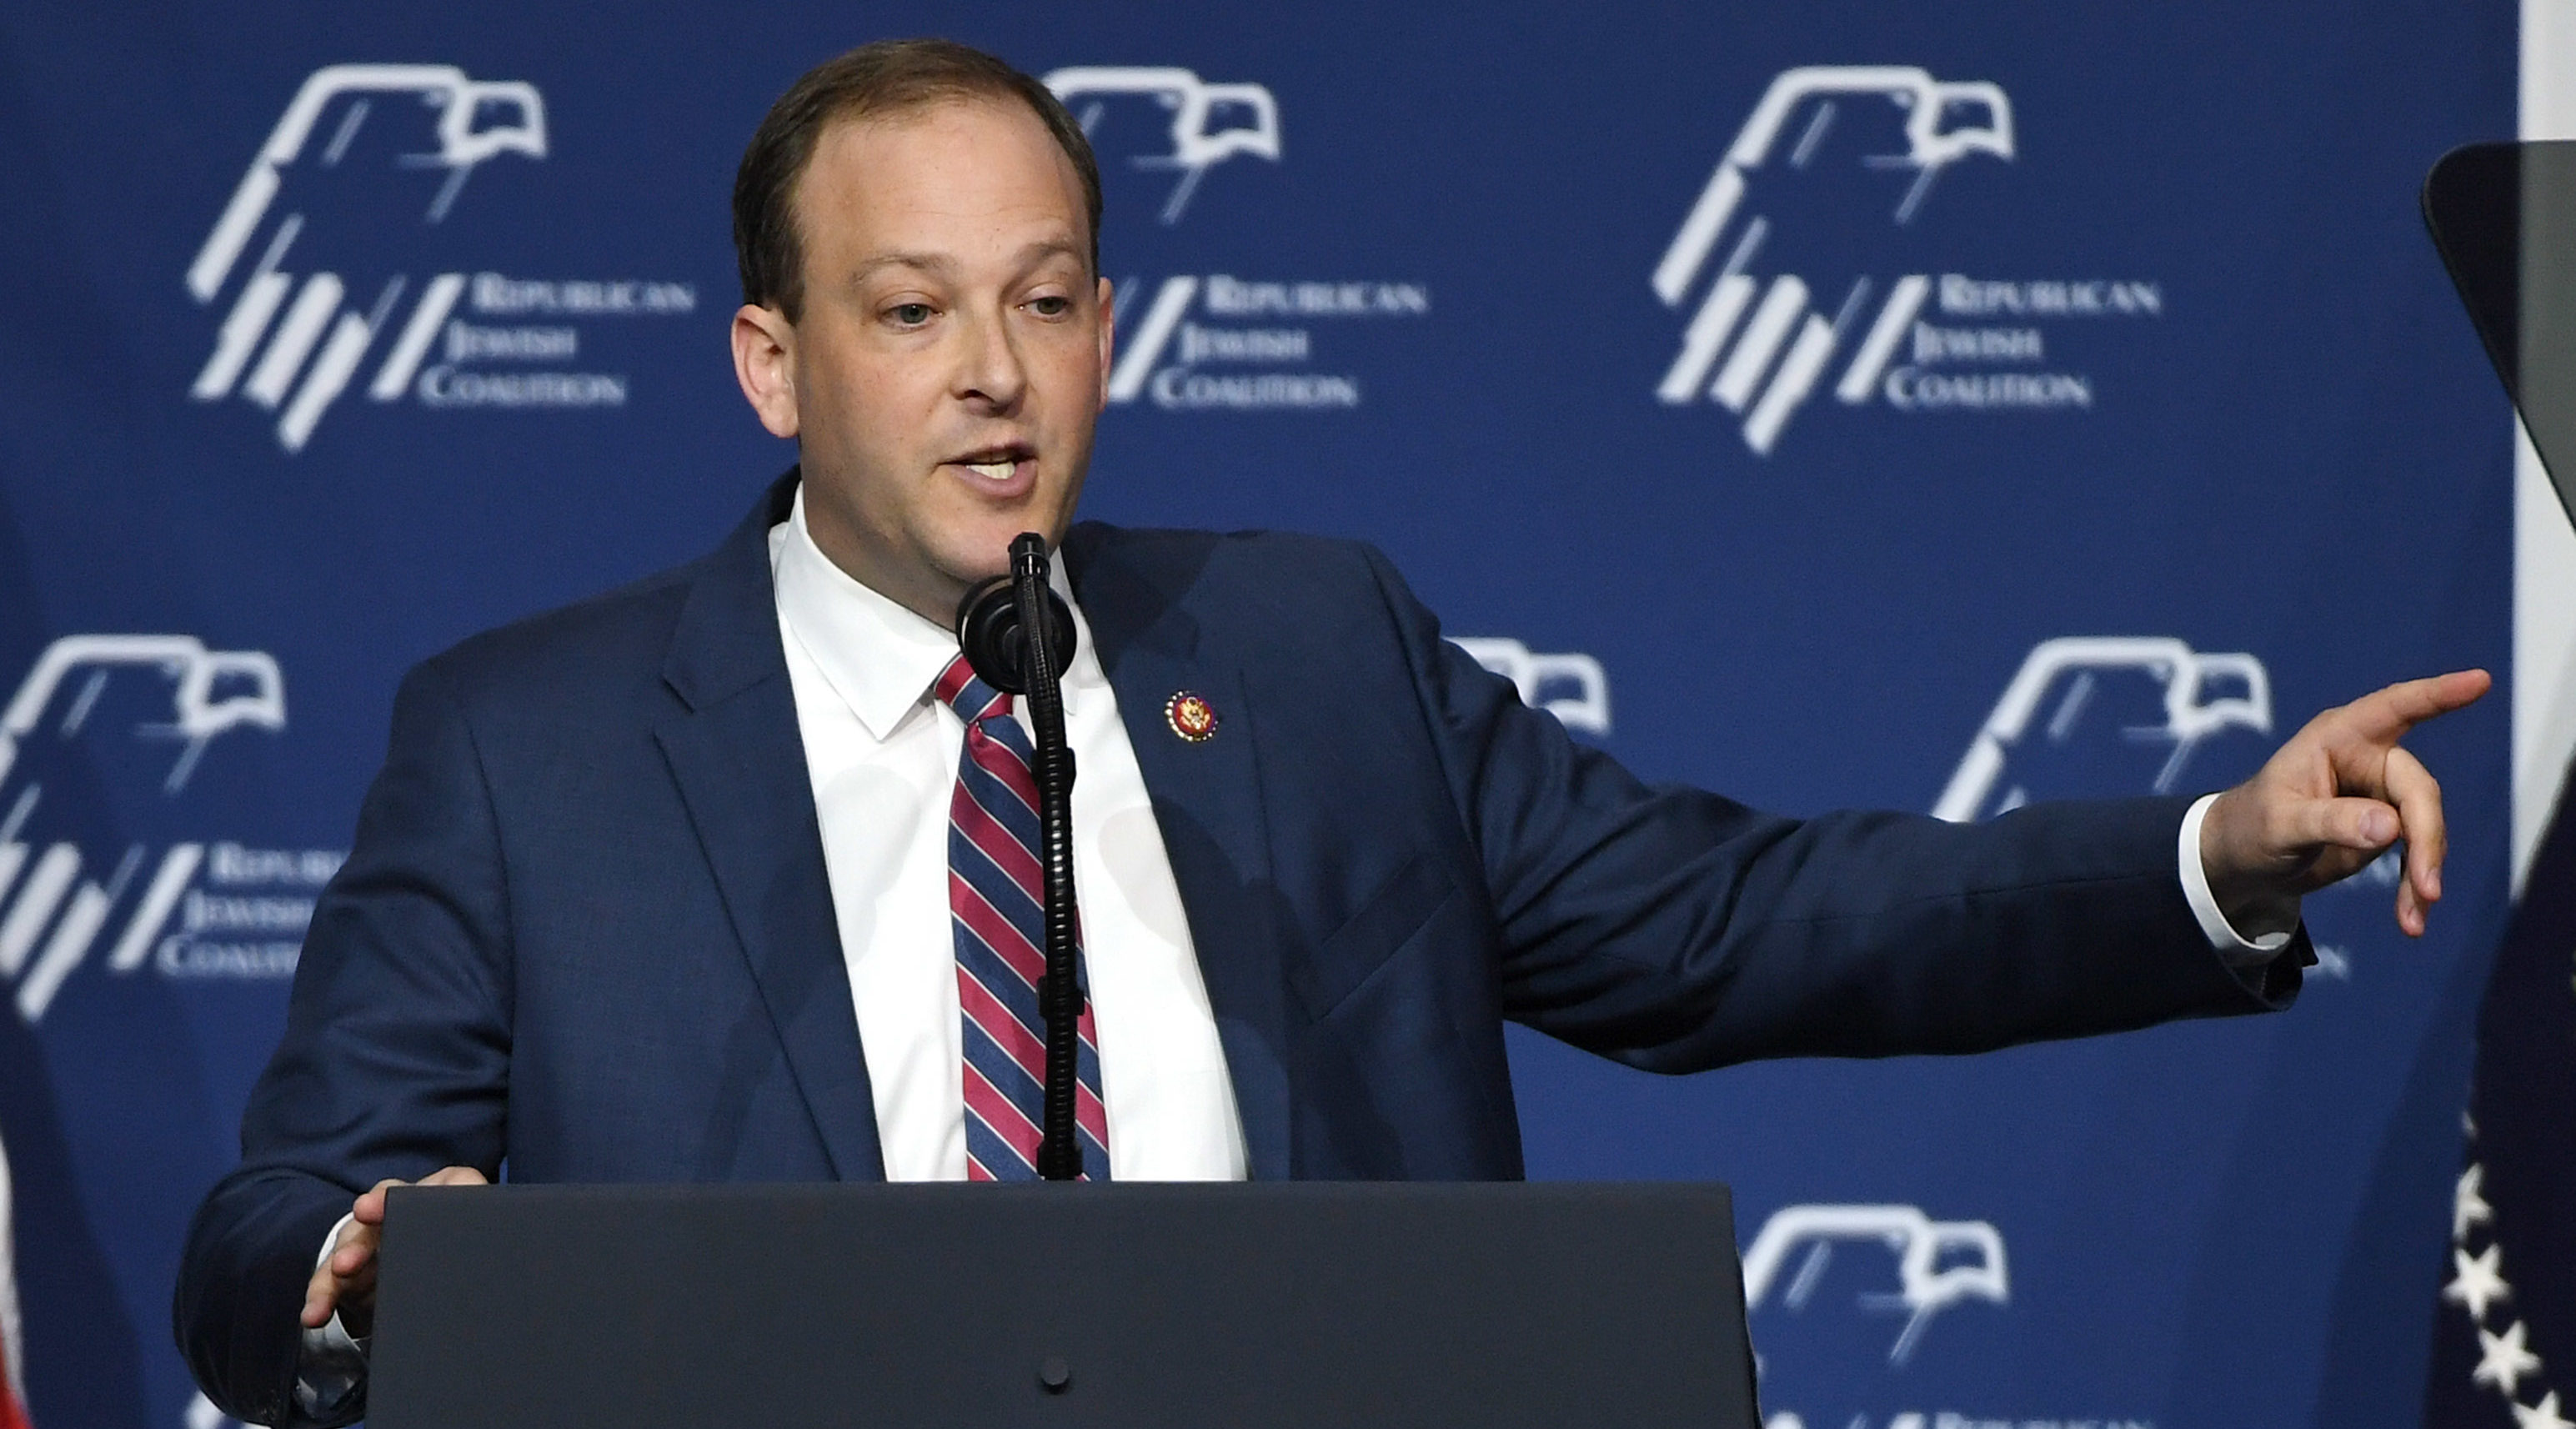 Rep. Lee Zeldin considering run for New York governor